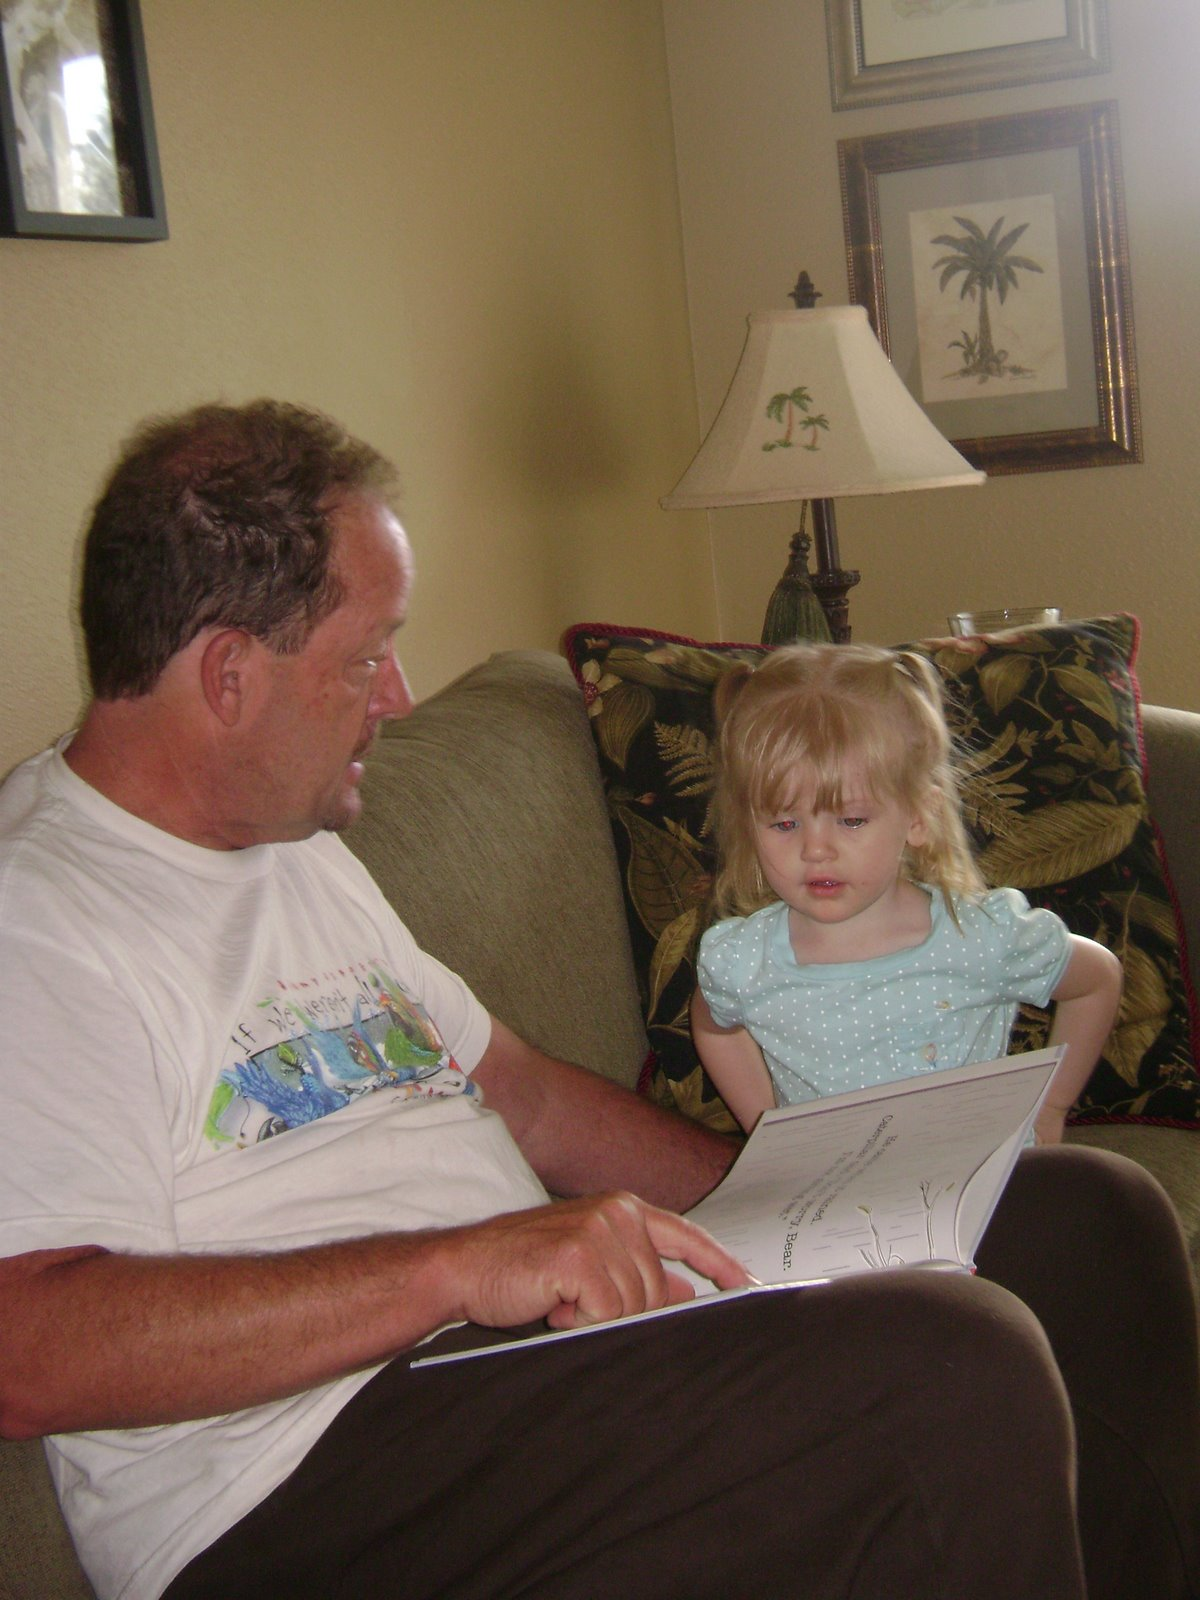 [fathers+day+2008+004.jpg]